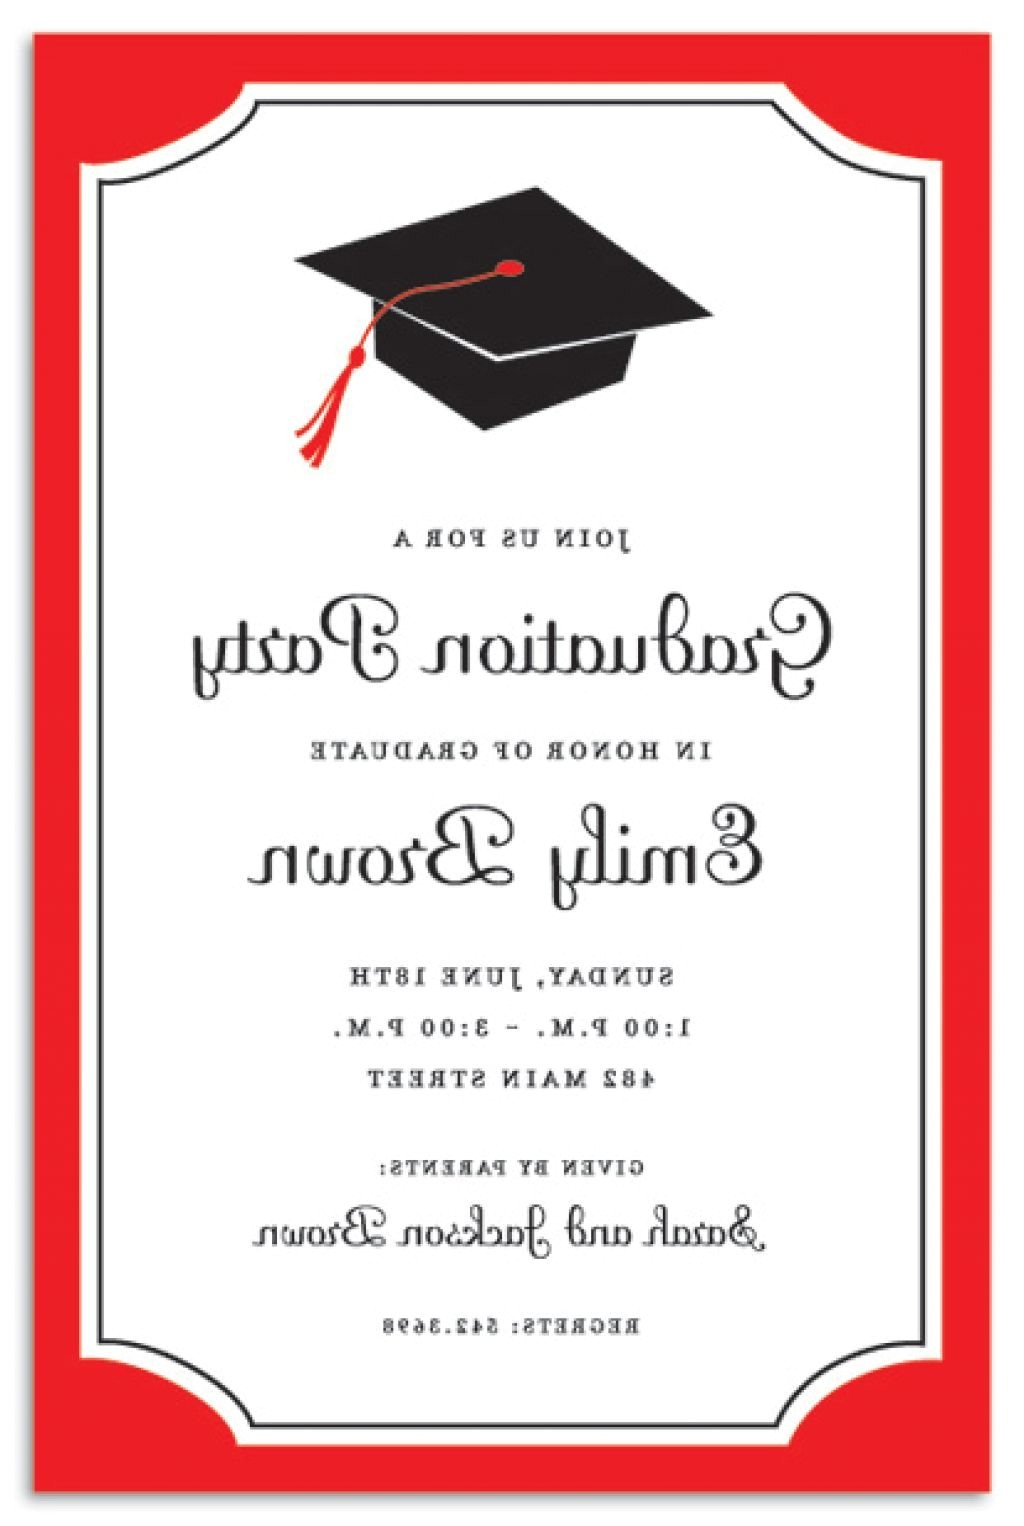 remarkable with university of texas graduation celebration party invitation and red black border colors